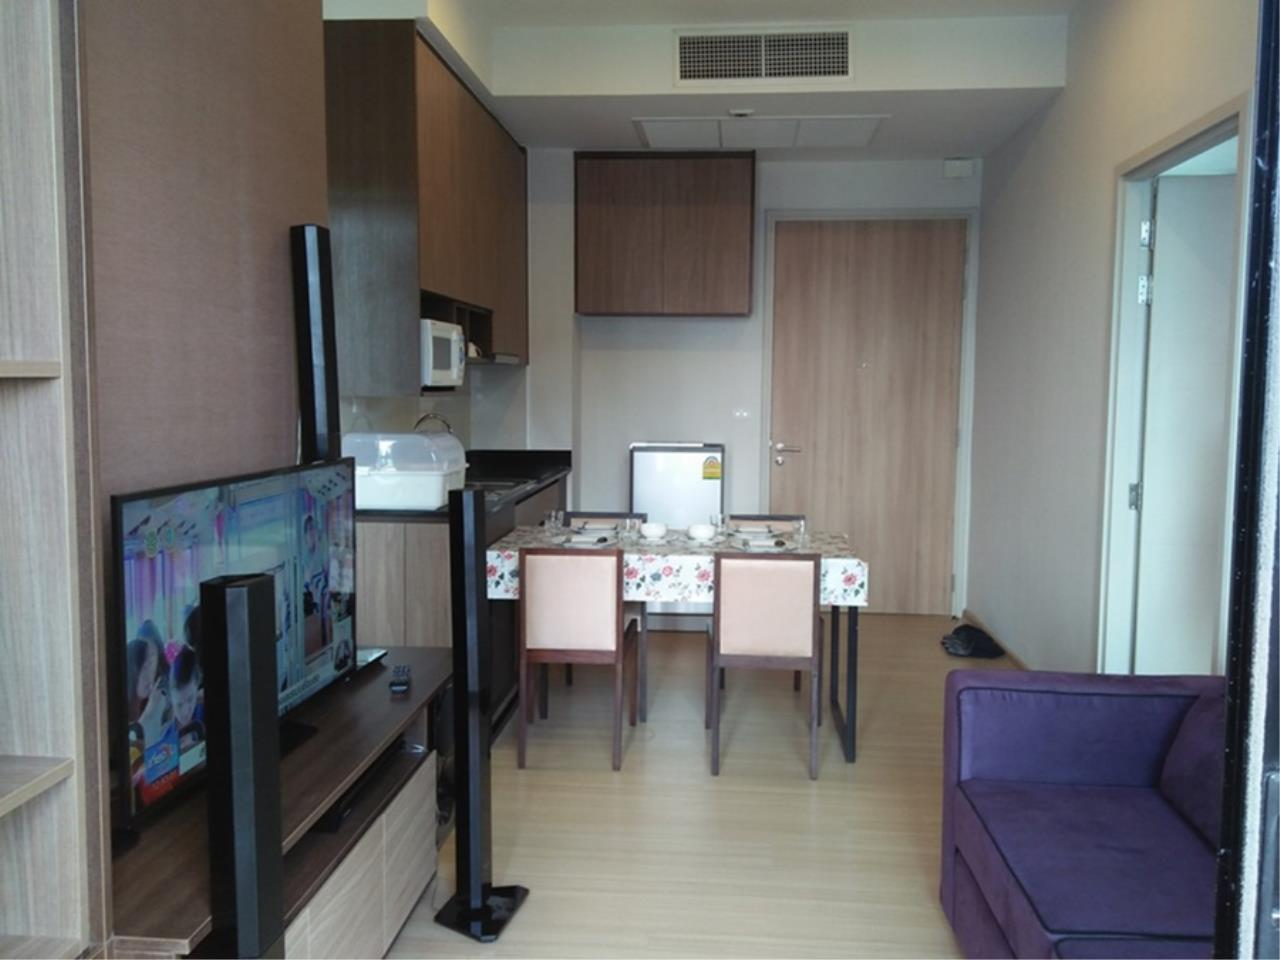 Siam Prop Agency's The Capital Ekamai - Thonglor Luxury Condo, 2 bedrooms for rent with 4-meter ceiling height 8